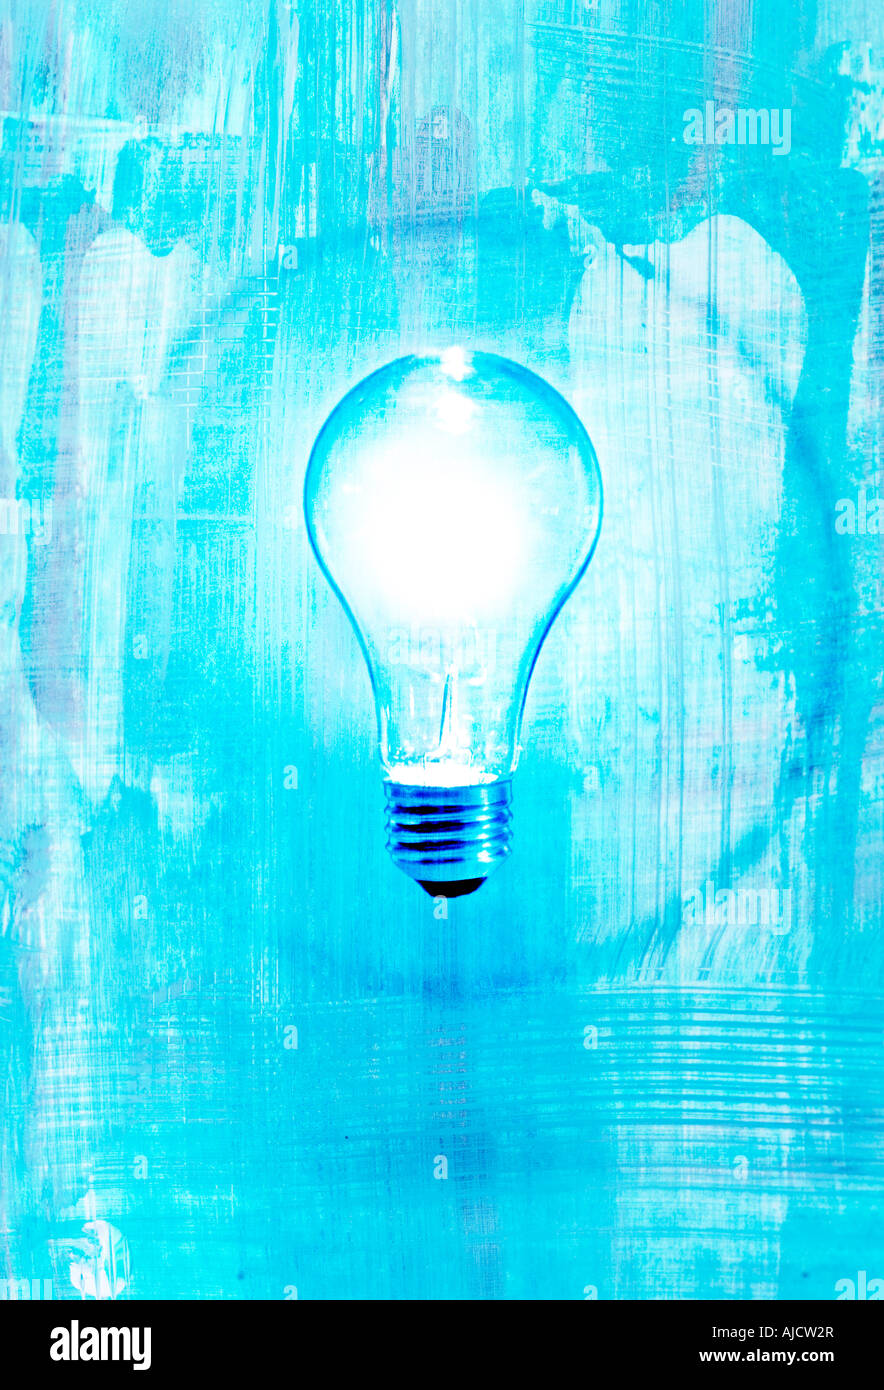 bright light bulb with blue background and circle showing idea or insight - Stock Image